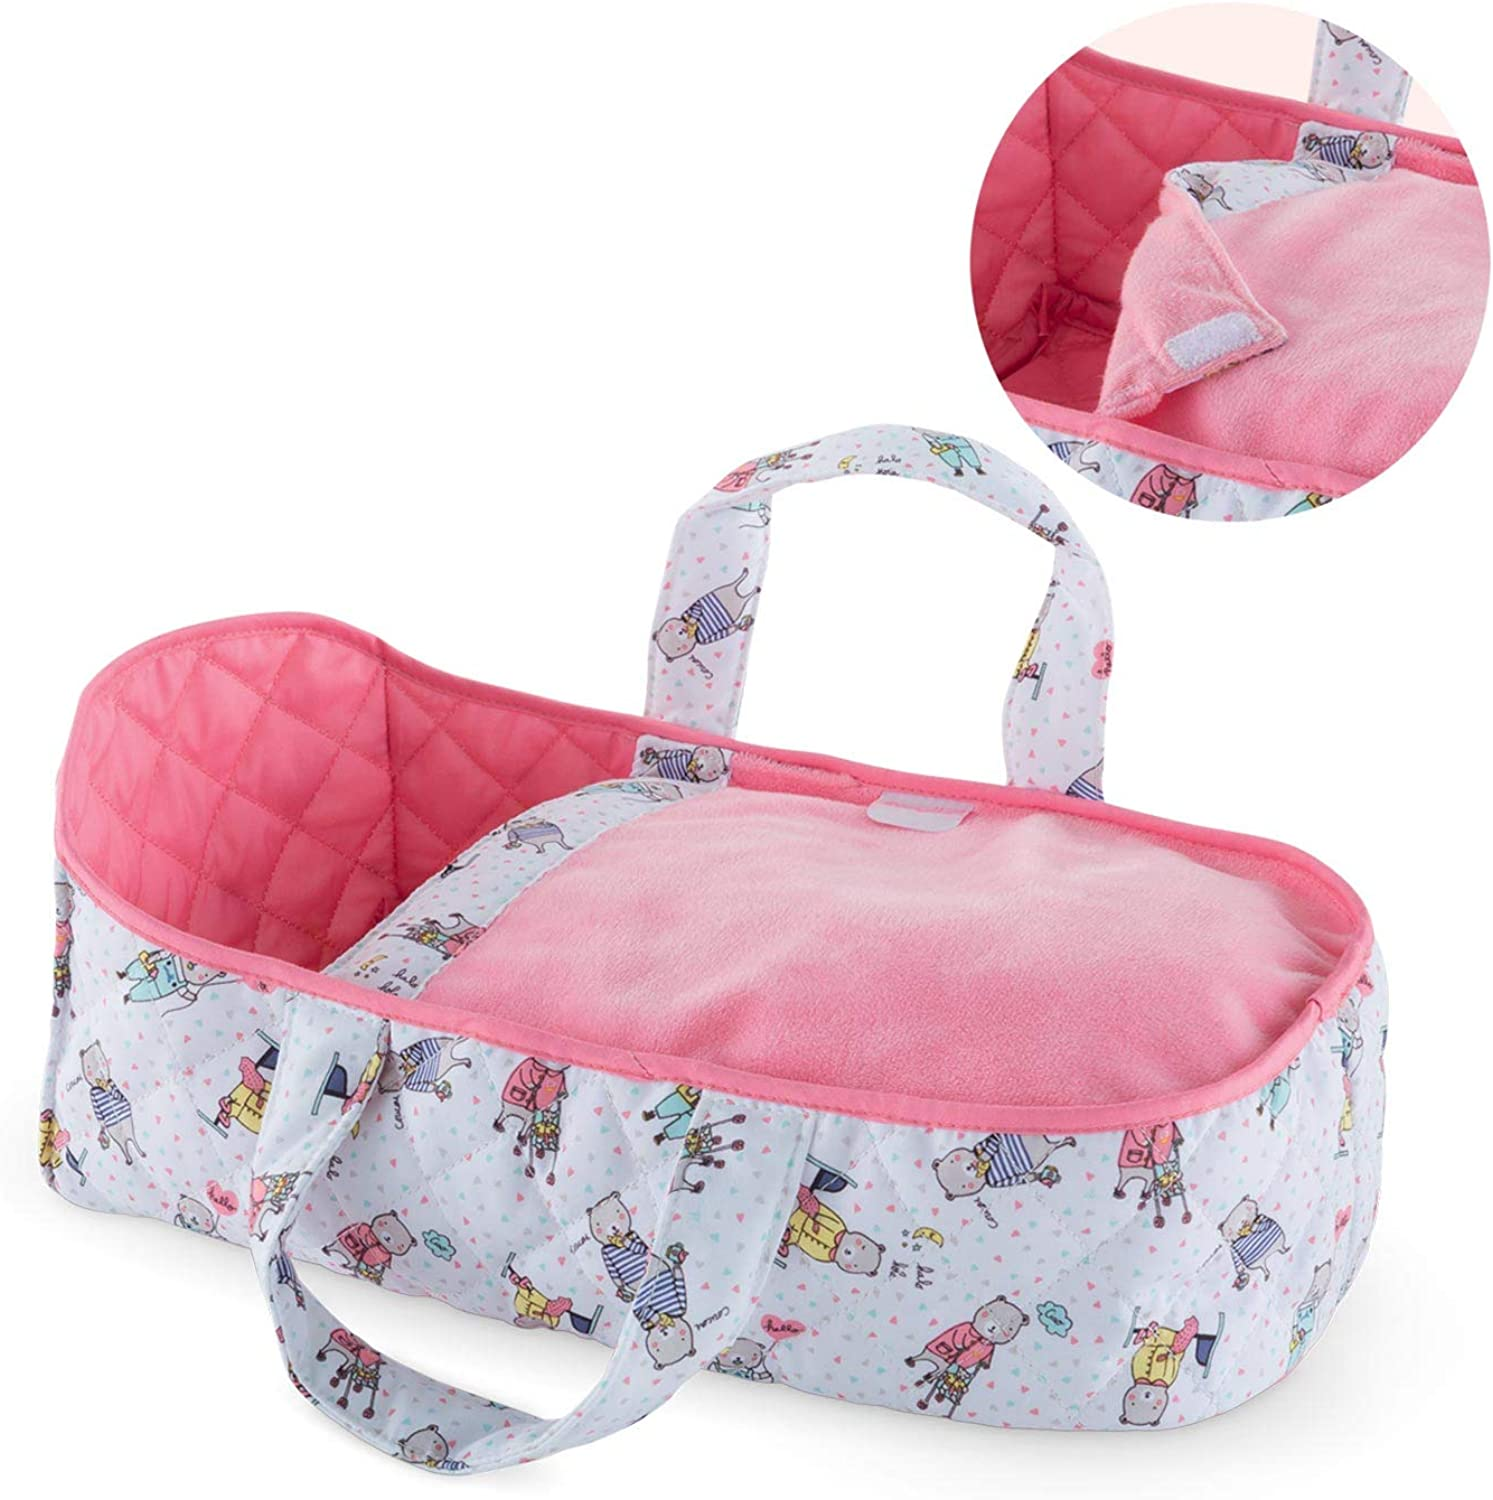 Cgoldlle Mon Premier Poupon Carry Bed Toy Baby Doll Toy, Pink